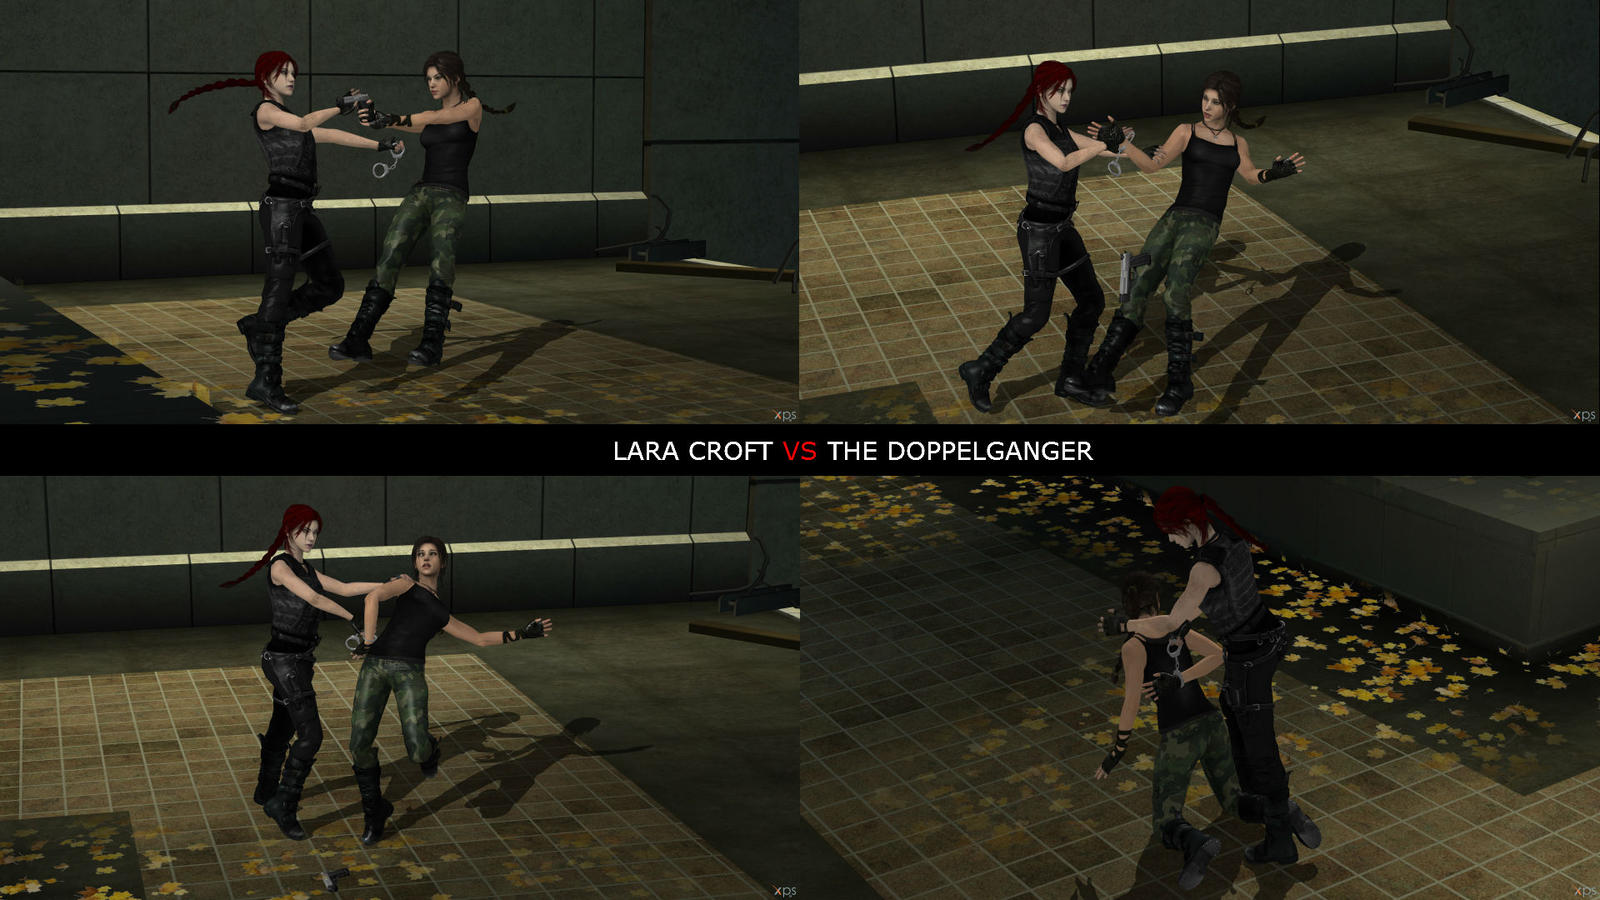 Lara croft kiss fucks comics